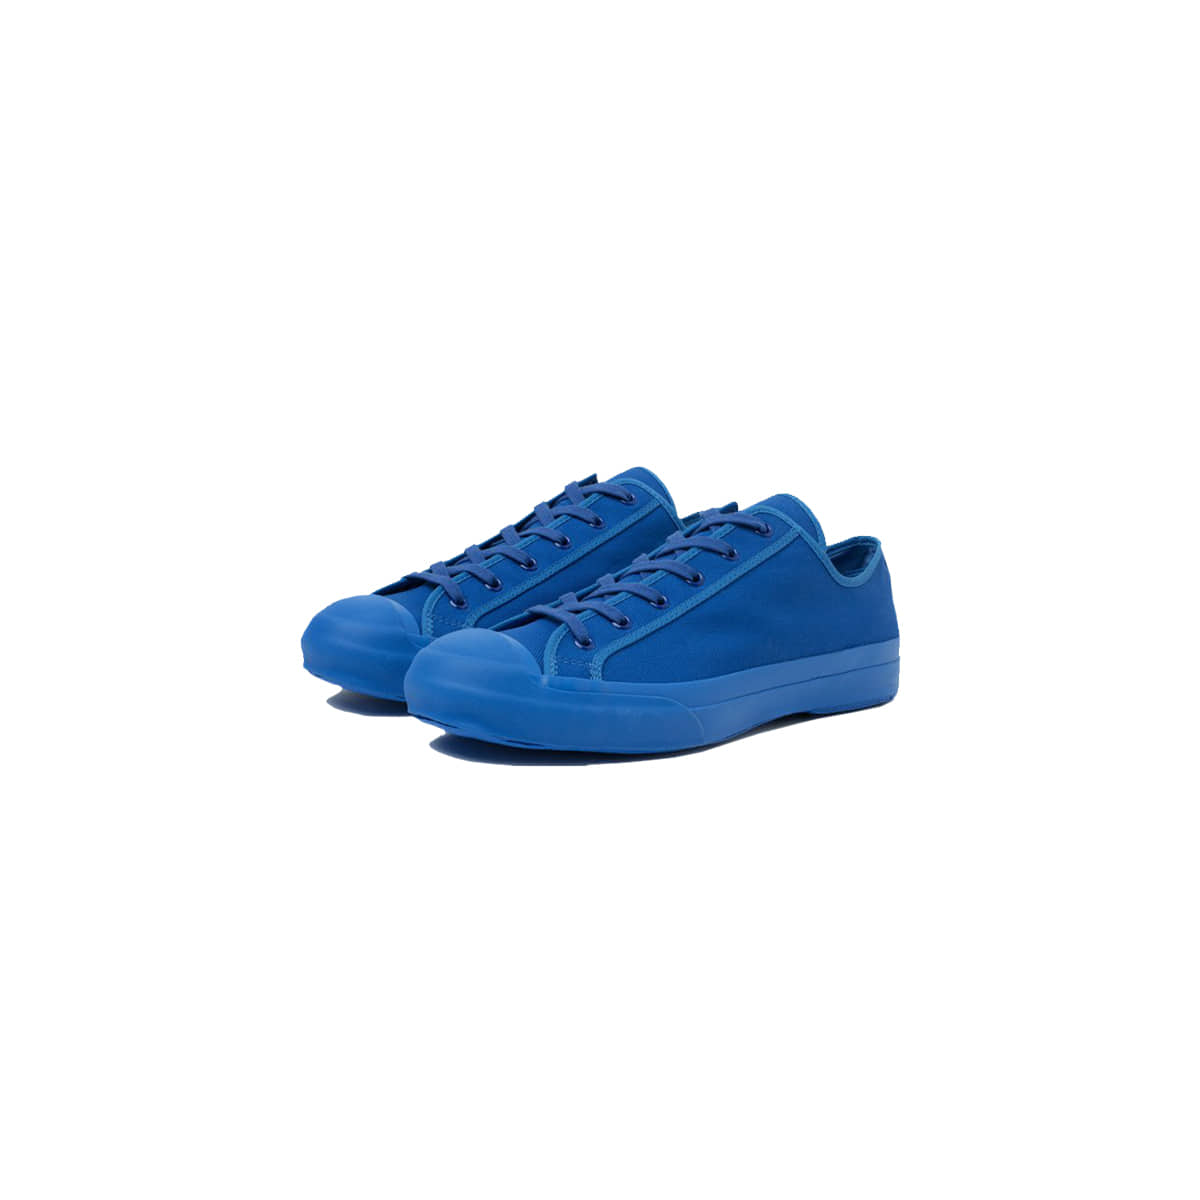 [STUDIO NICHOLSON] MERINO VULCANISED SOLE CANVAS SHOE 'KLEIN BLUE'